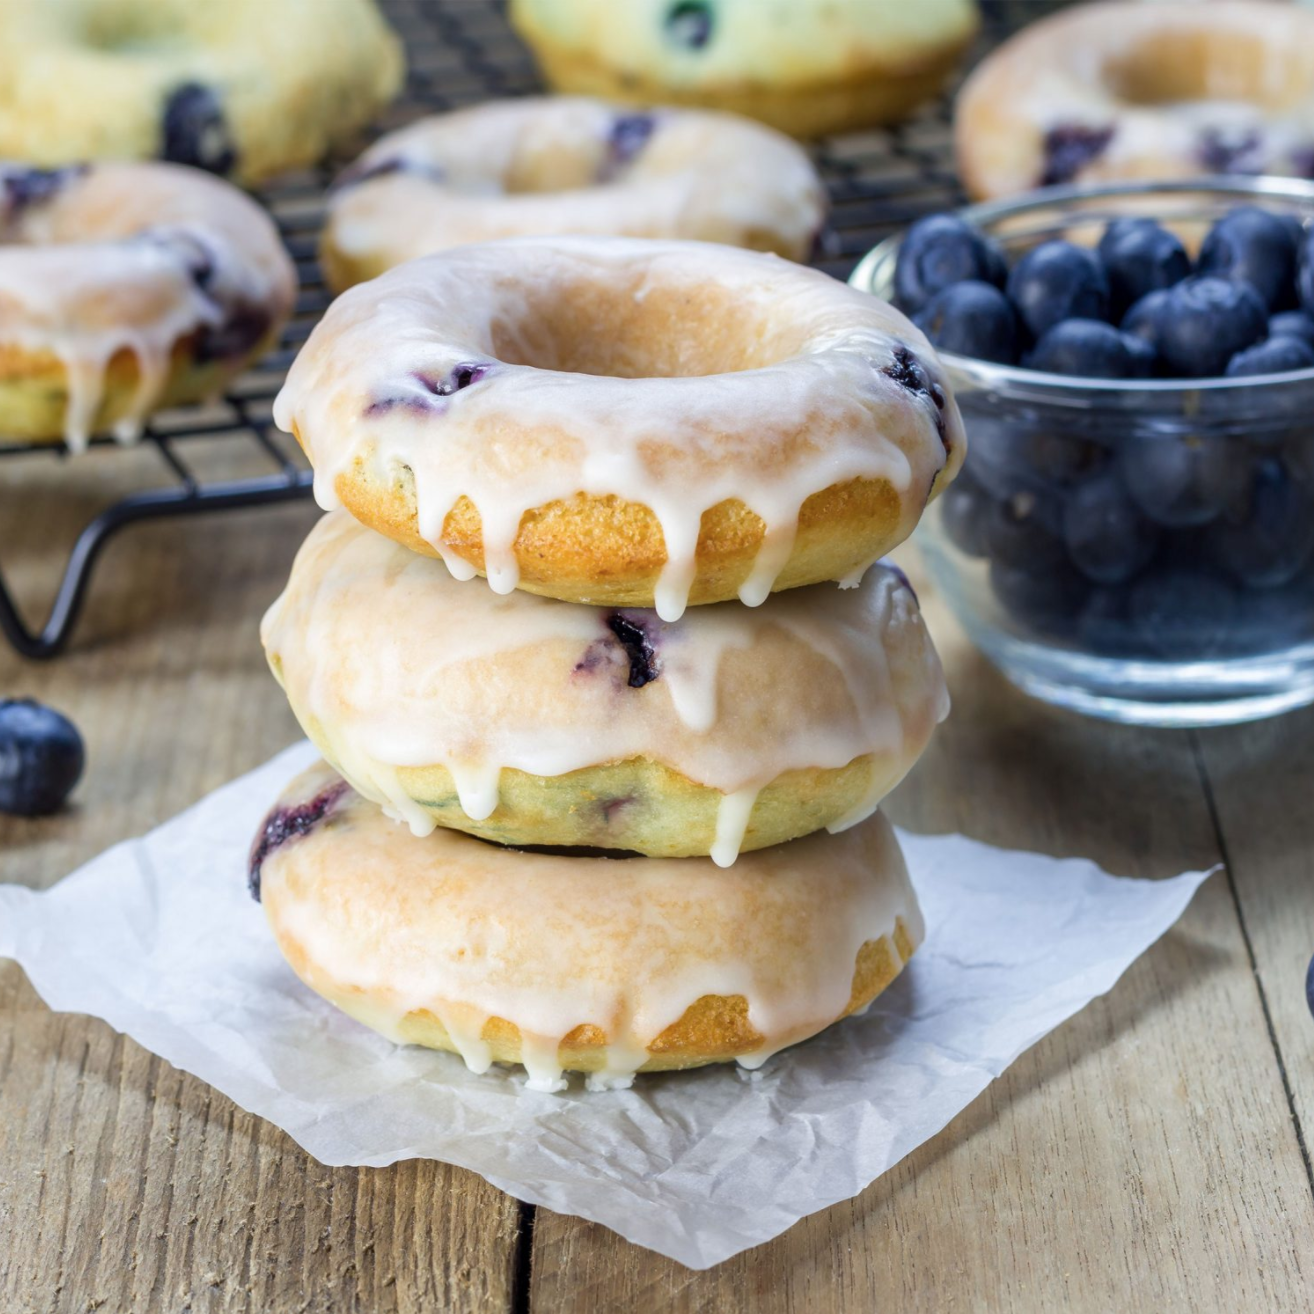 Blueberry doughnuts have an unassuming exterior, but they're one of the most beloved types. They are similar to old-fashioned doughnuts, with a hard exterior and a soft exterior. Blueberry doughnuts are glazed with a light, sugar glaze and packed with blueberry galore!